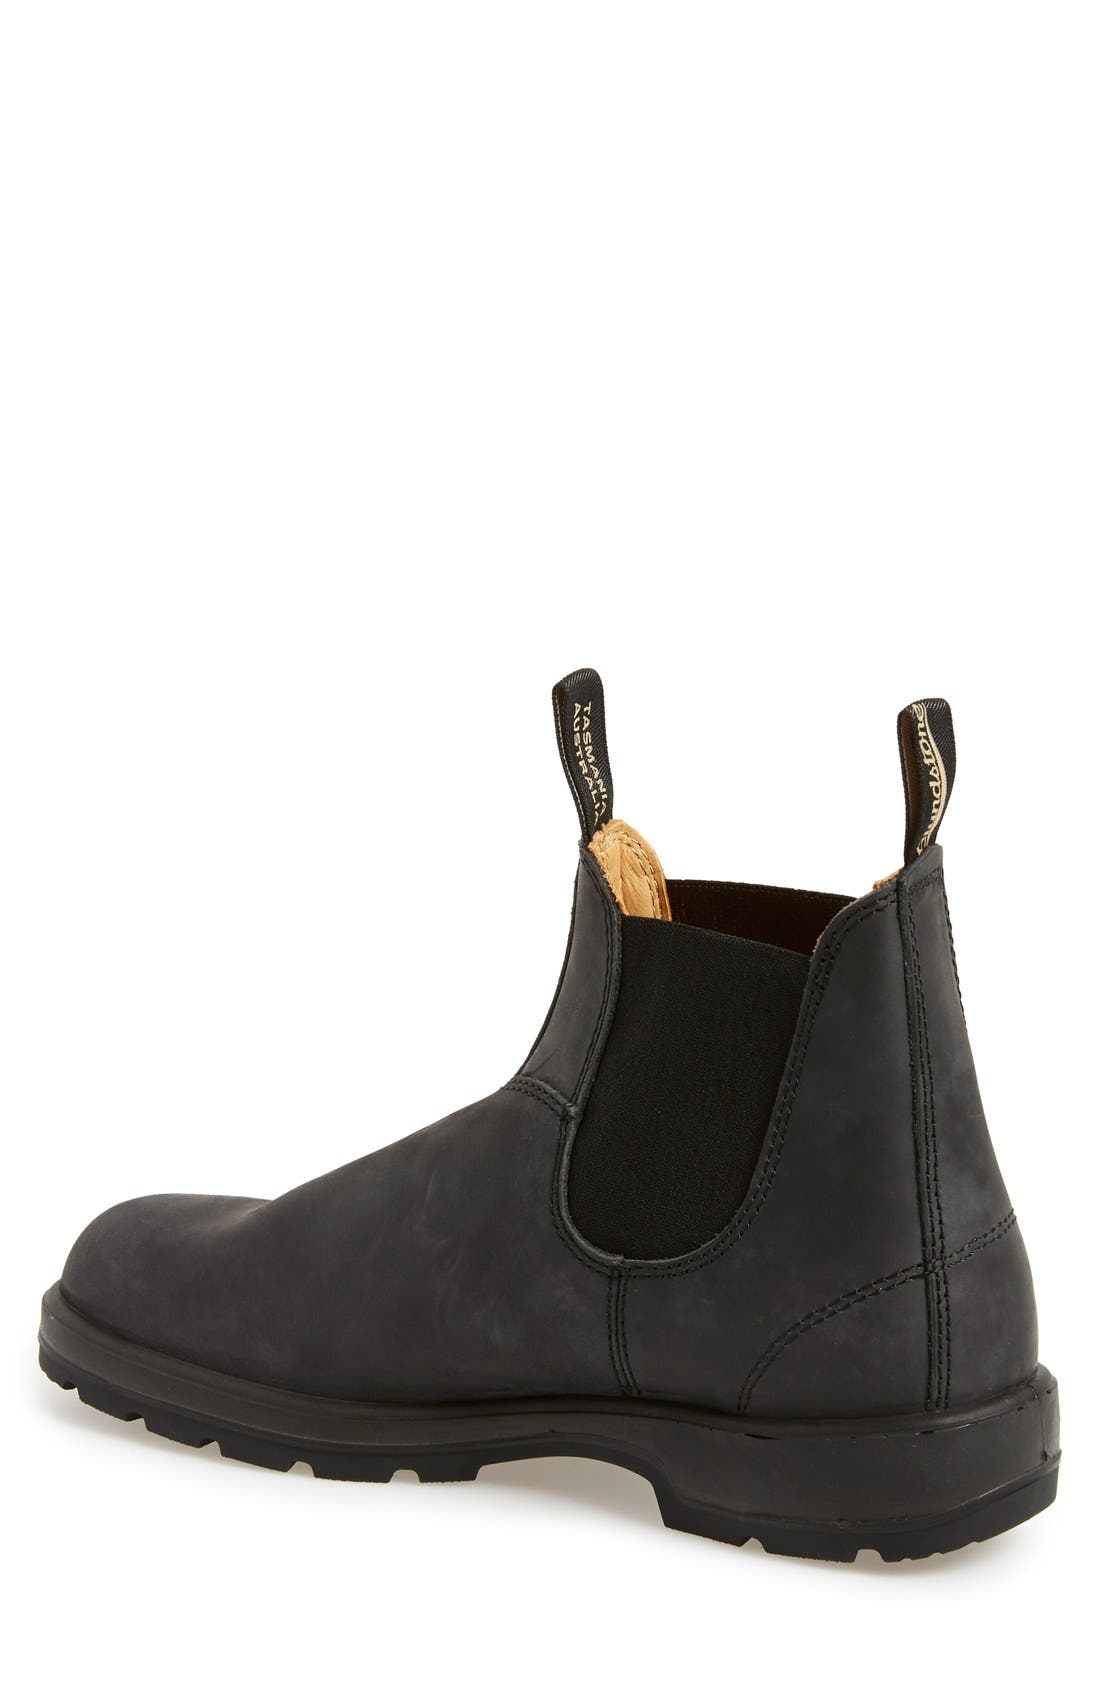 Alternate Image 2  - Blundstone Footwear Chelsea Boot (Men)